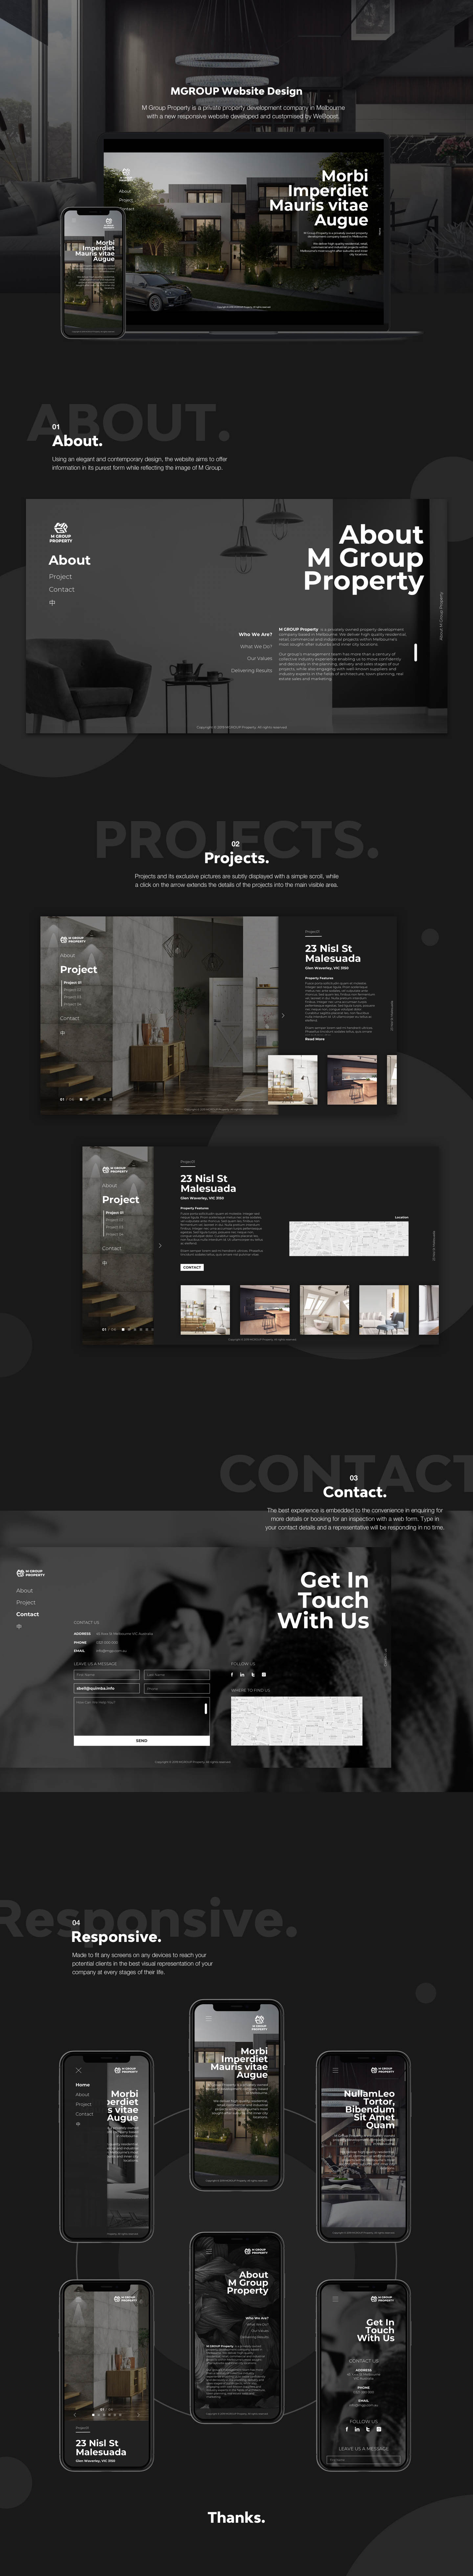 M group property website